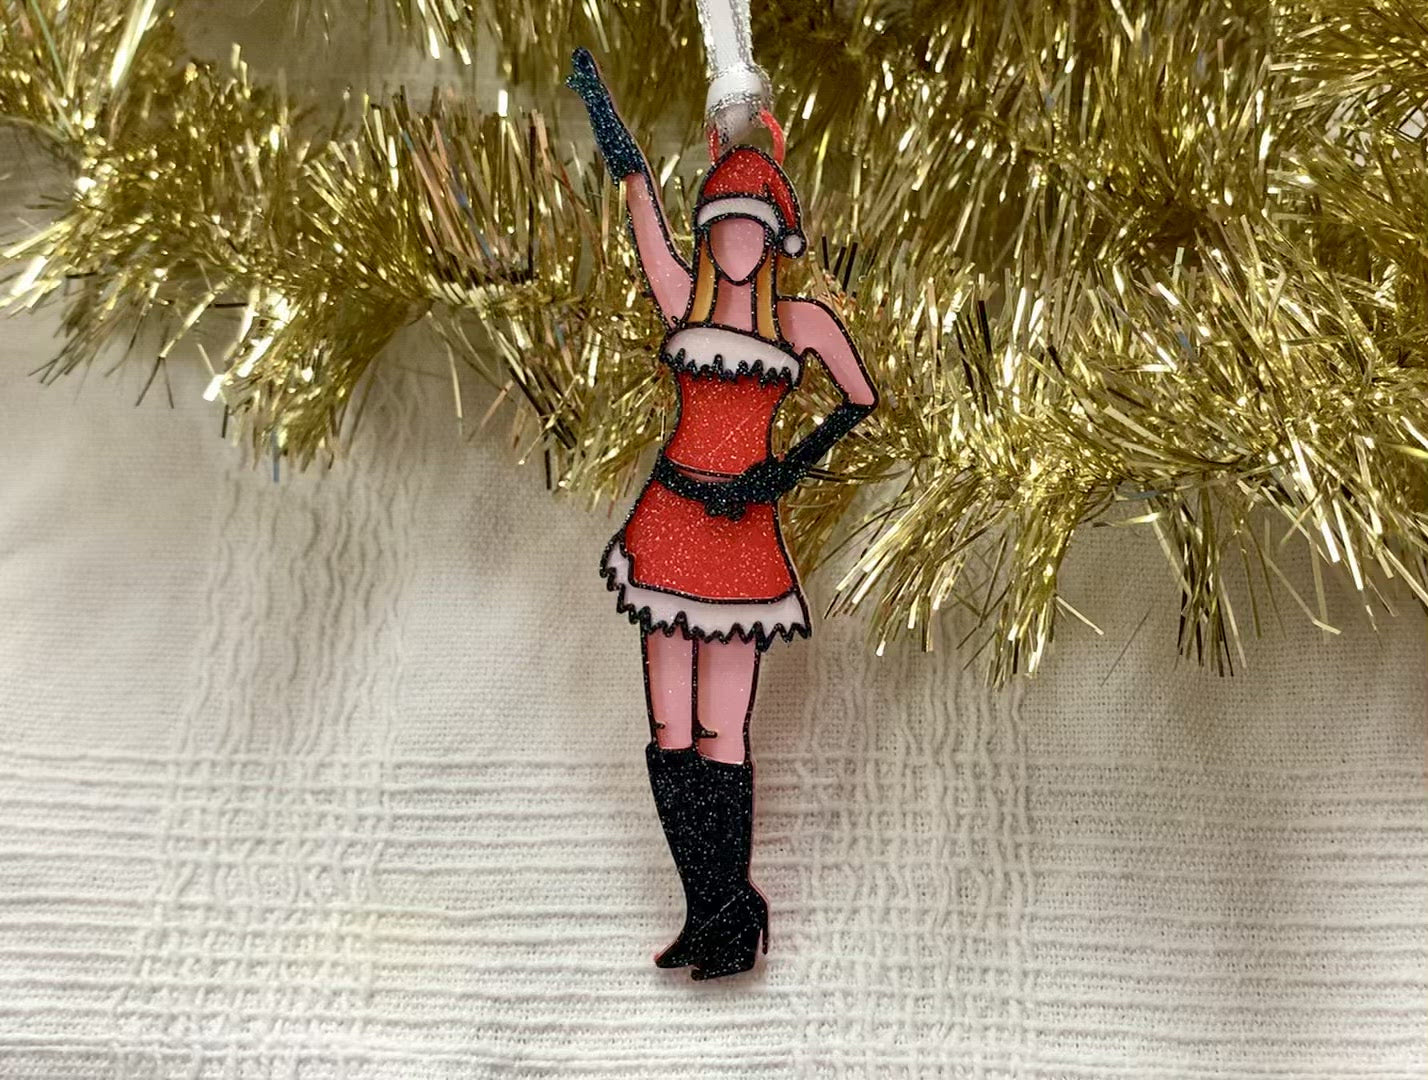 There is a white fabric background with gold garland. Laying on top of these is a 3D printed ornament from R+D. The ornament is printed in a plant based filament. It is shaped like Regina George from the movie Mean Girls. She is striking the iconic pose at the beginning of performing Jingle Bell Rock, wearing black gloves and boots and a red outfit with white trim. The entire ornament is covered in glitter to shimmer and shine in the light.